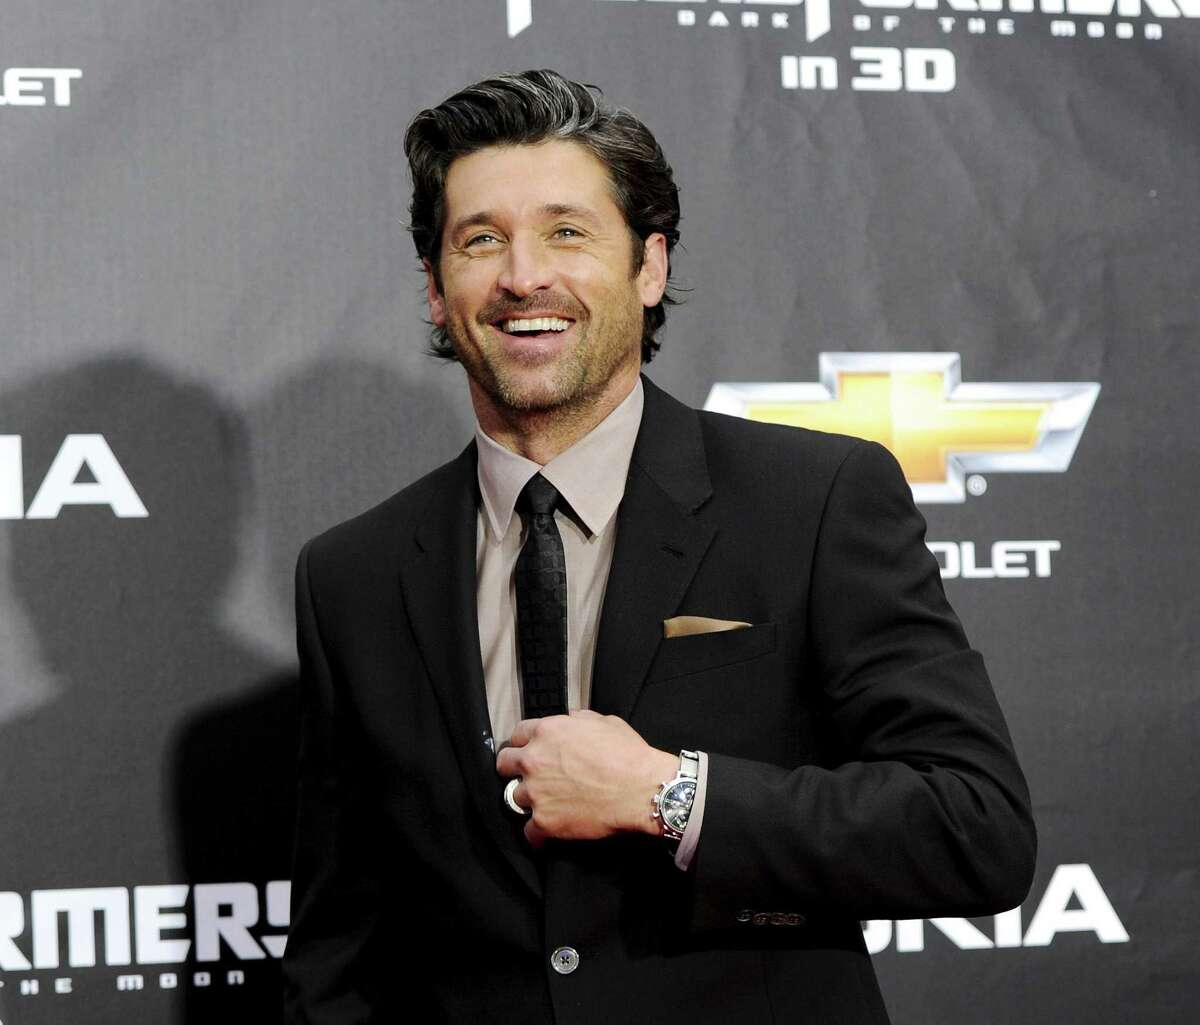 """FILE - In this June 28, 2011 file photo, actor Patrick Dempsey attends the """"Transformers: Dark Of The Moon'"""" premiere in Times Square in New York. Dempsey is returning home this weekend to receive an award for his leadership in caring for cancer patients Dempsey, most famous for his role as Dr. Derek Shepherd in the television series ìGreyís Anatomy,î is scheduled to receive the Maine Creative Industries Award on Saturday, Nov. 15, 2014 in Portland. He helped found the Patrick Dempsey Center for Cancer Hope & Healing at Central Maine Medical Center in Lewiston. He was driven by his motherís battle with ovarian cancer. Amanda Dempsey died in March at age 77. (AP Photo/Evan Agostini, File)"""